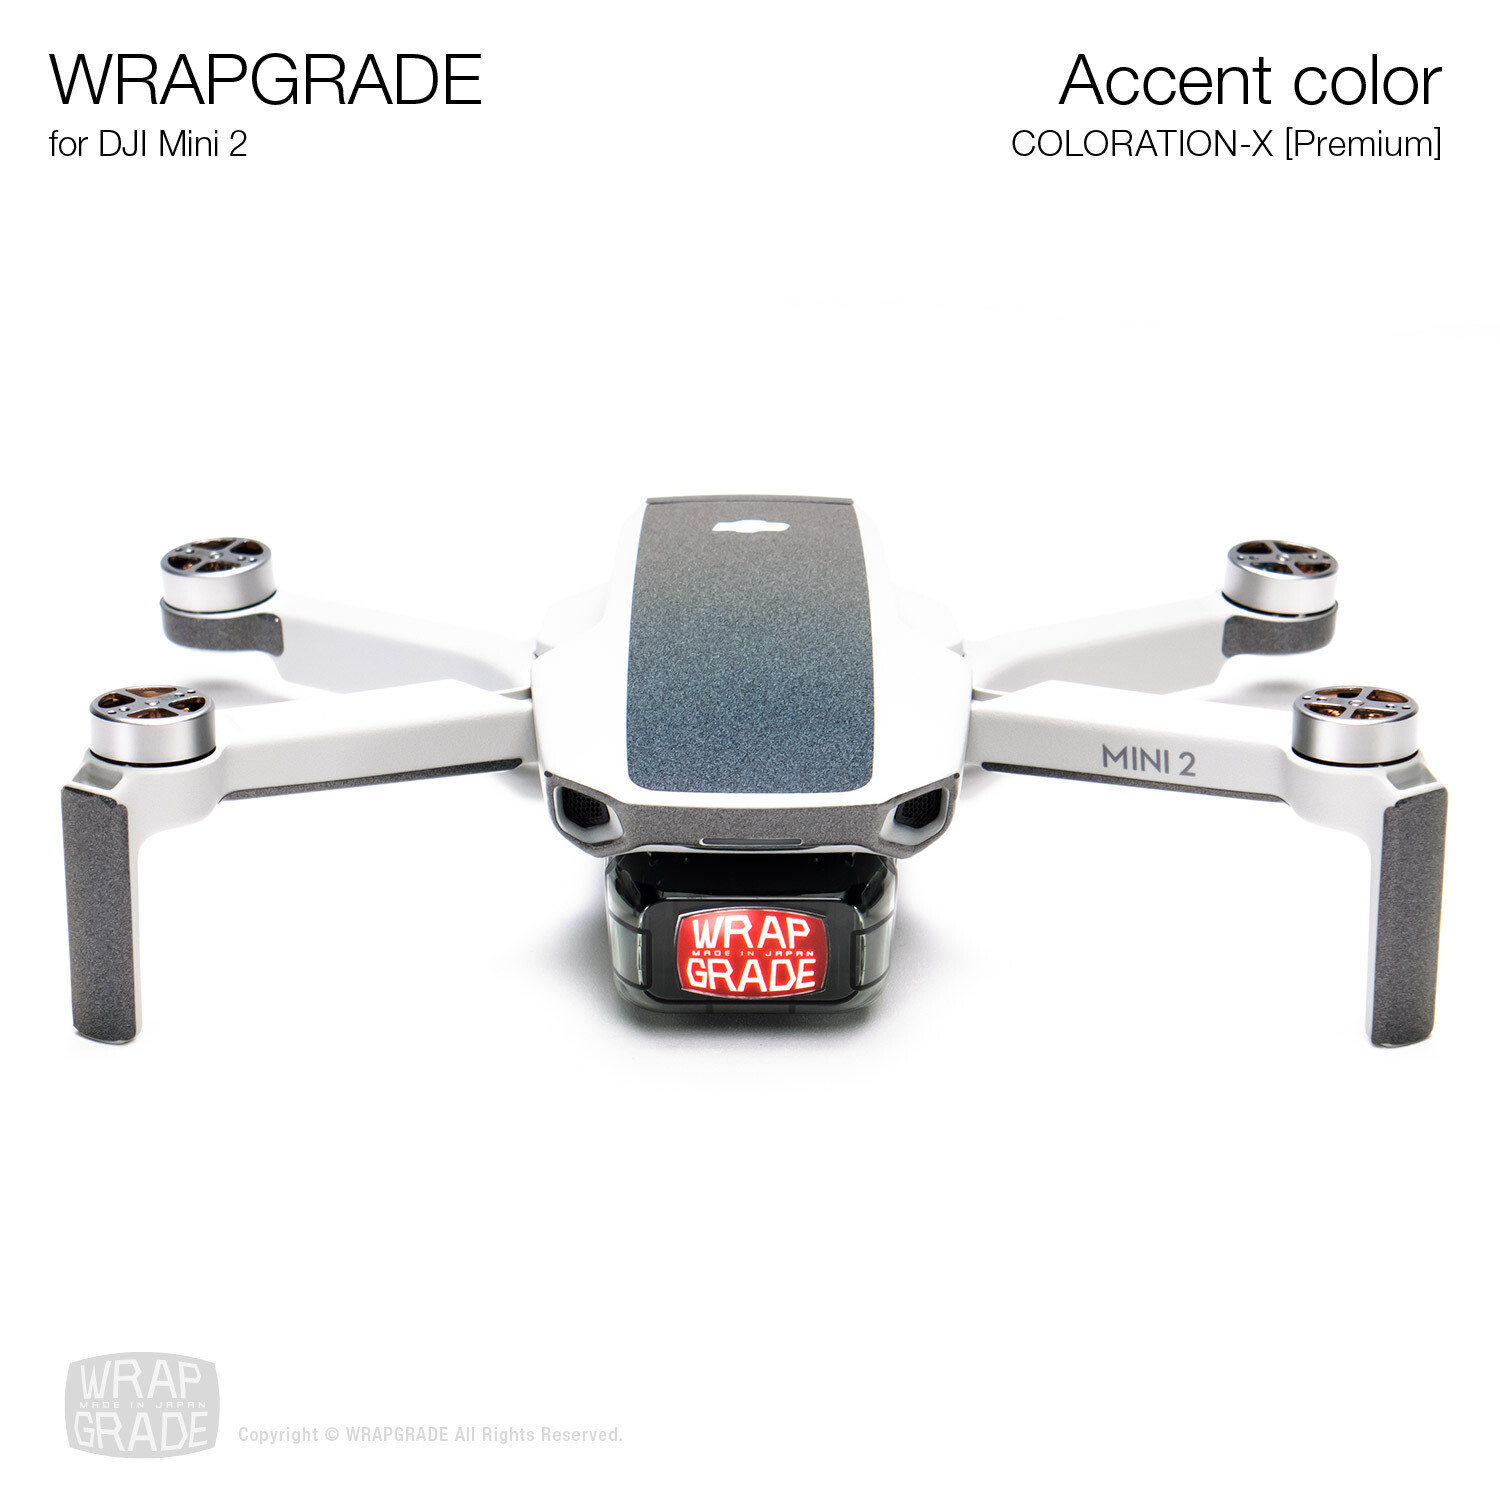 Wrapgrade Poly Skin for DJI Mini 2 | Accent color (COLORATION-X)